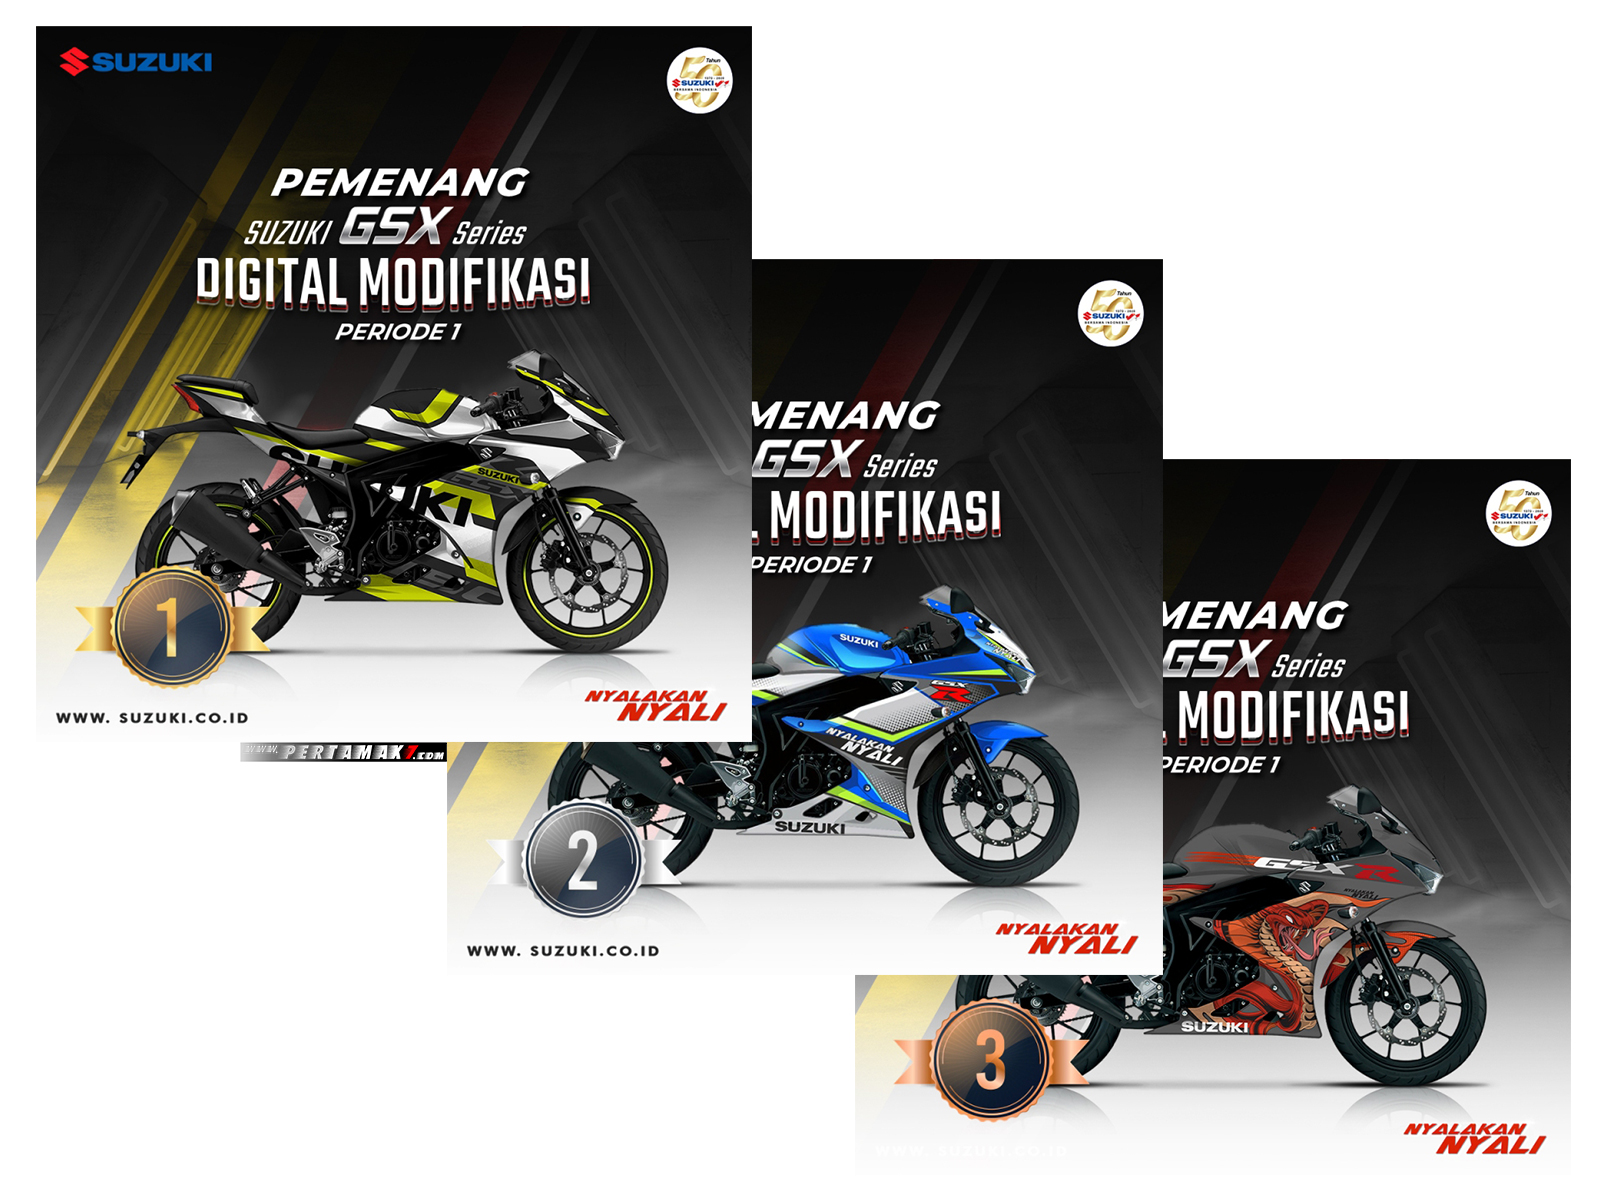 Juara Modifikasi Digital Suzuki GSX-R150 Periode-1